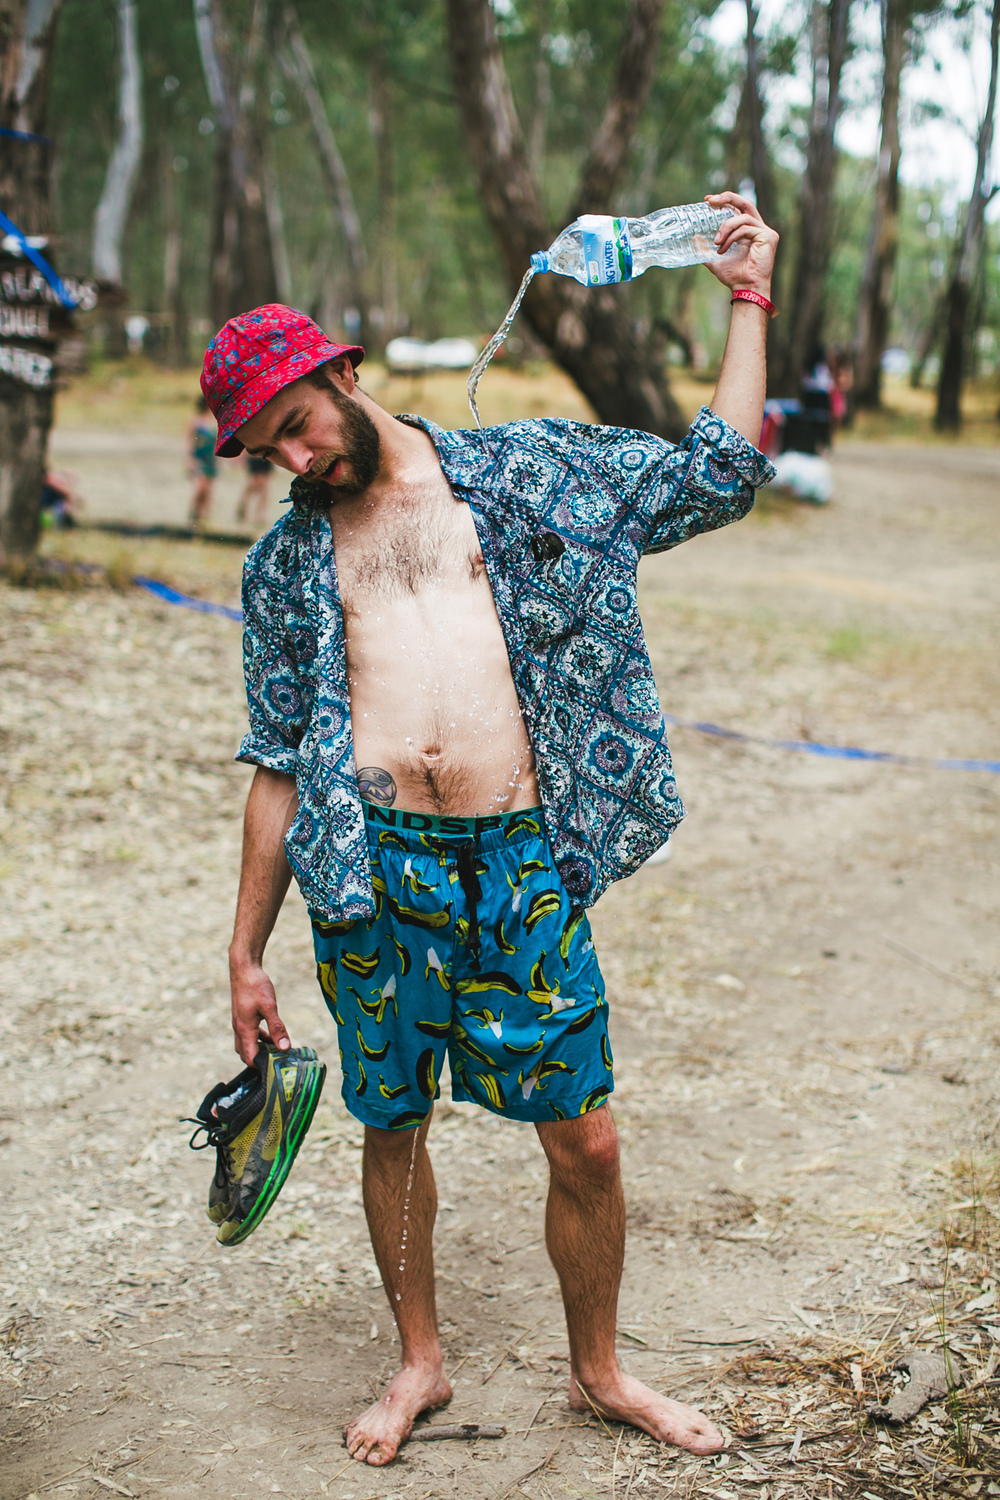 VOENA_STRAWBERRY_FIELDS_FESTIVAL_2014_PHOTOS_DOOF_AUSTRALIA-73.jpg